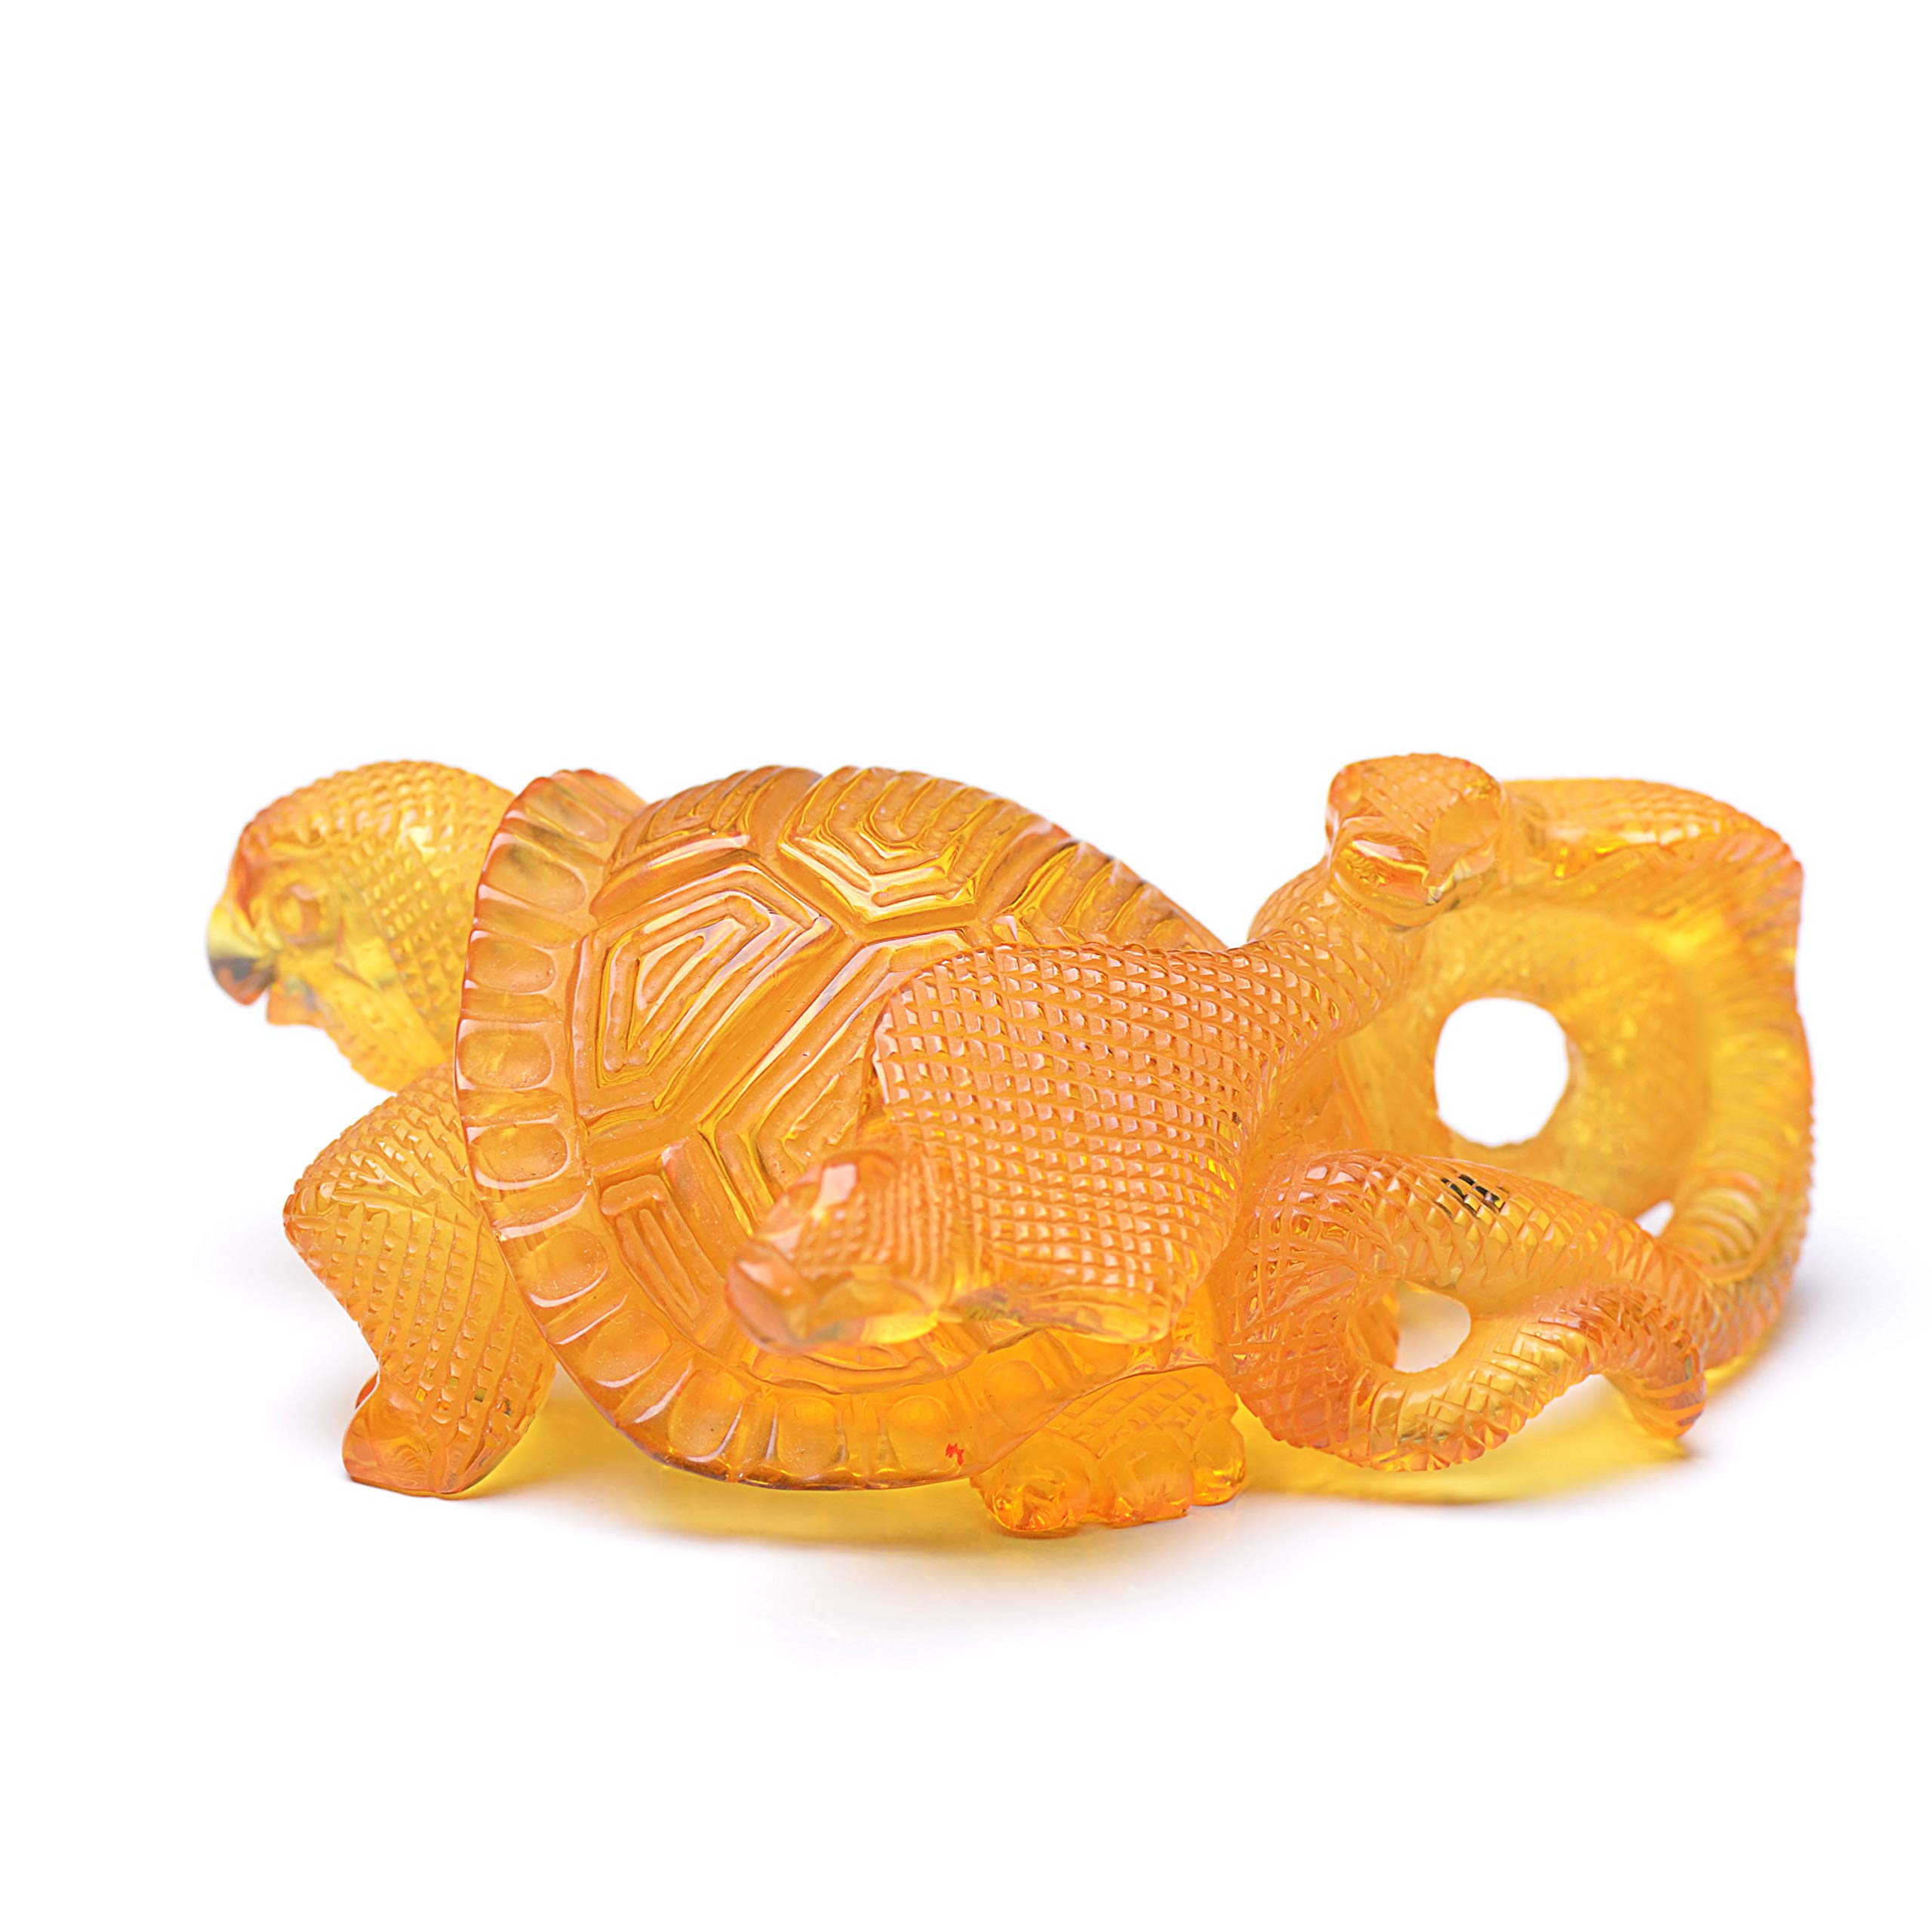 Amber Turtle with 2 Cobras - Amber Collectibles - Handmade Carved Amber Turtle - Amber Carvings - Handmade Baltic Amber Carvings by Genuine Amber